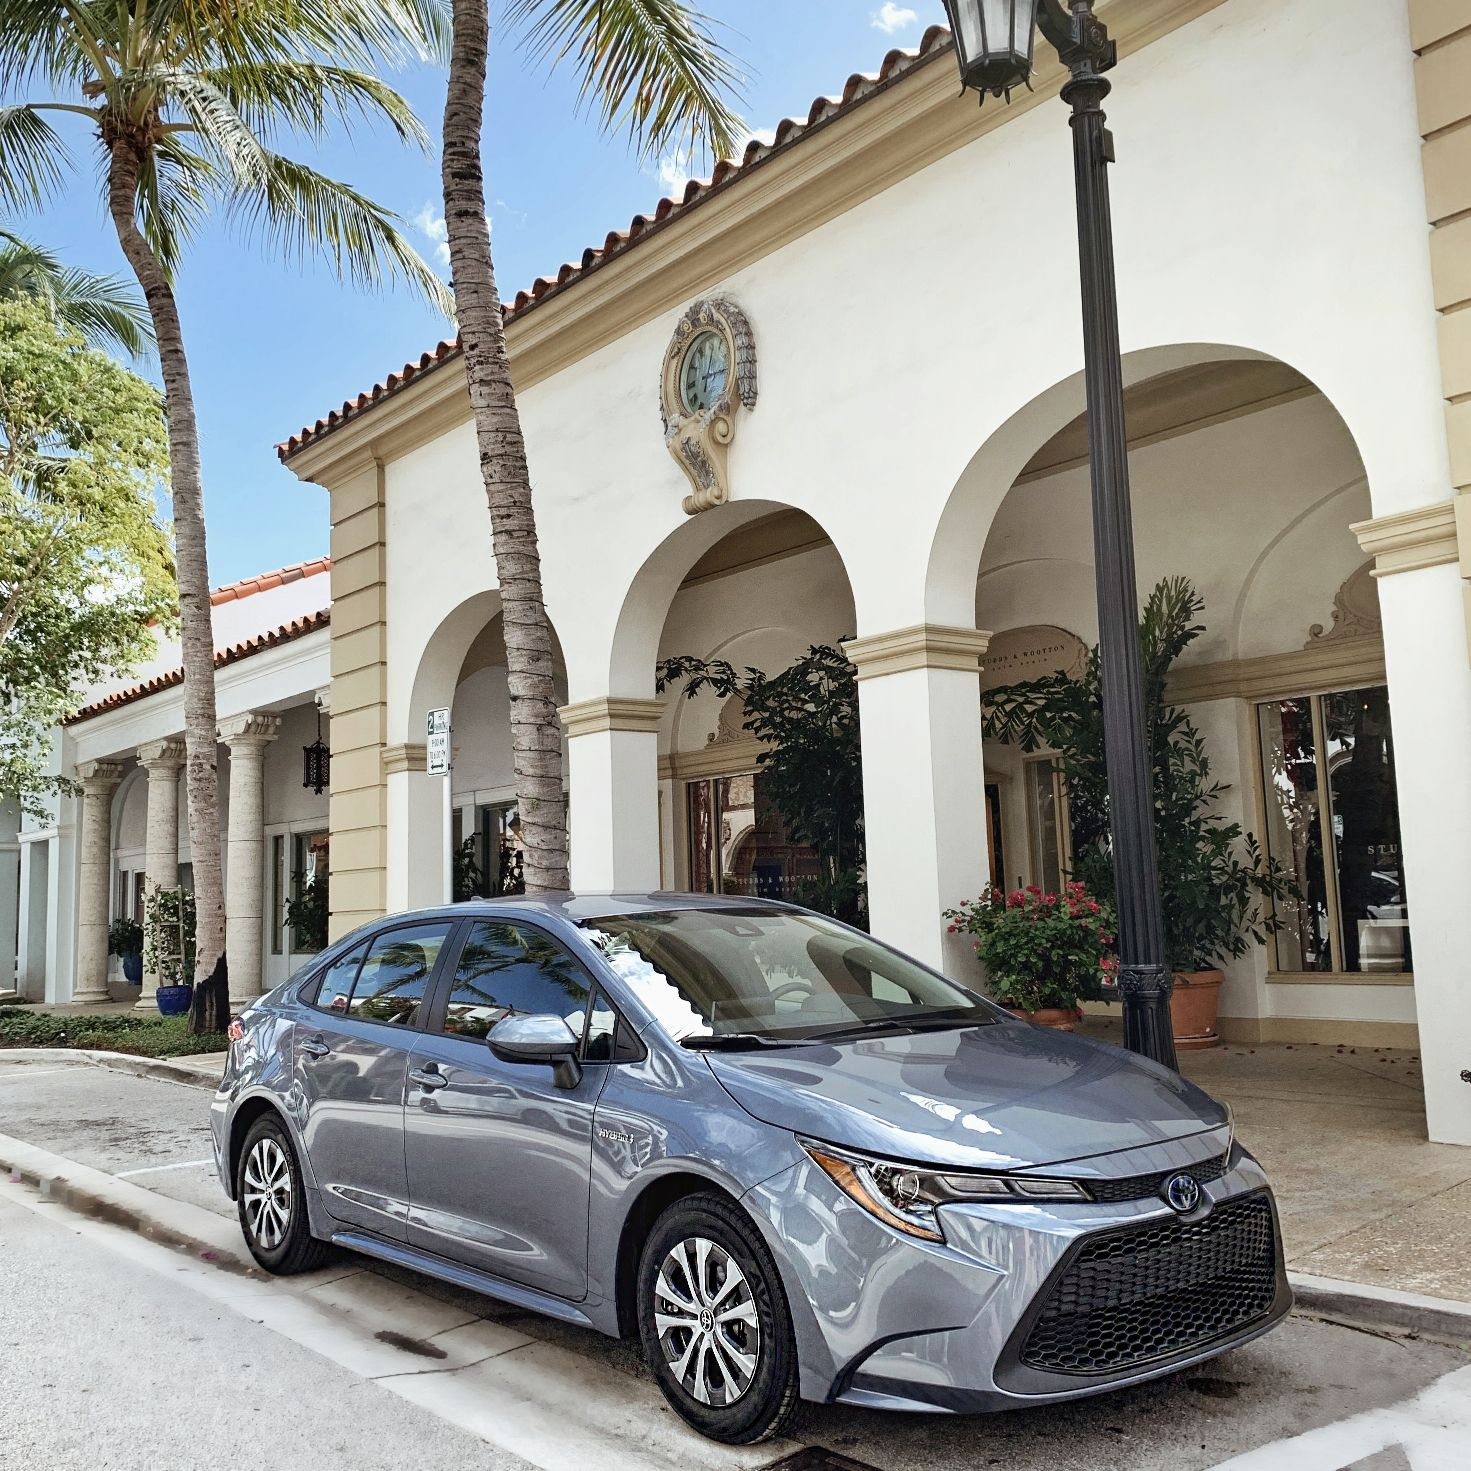 2020 Toyoto Corolla Hybrid Car Blogger West Palm Beach Worth Avenue Parallel Parking